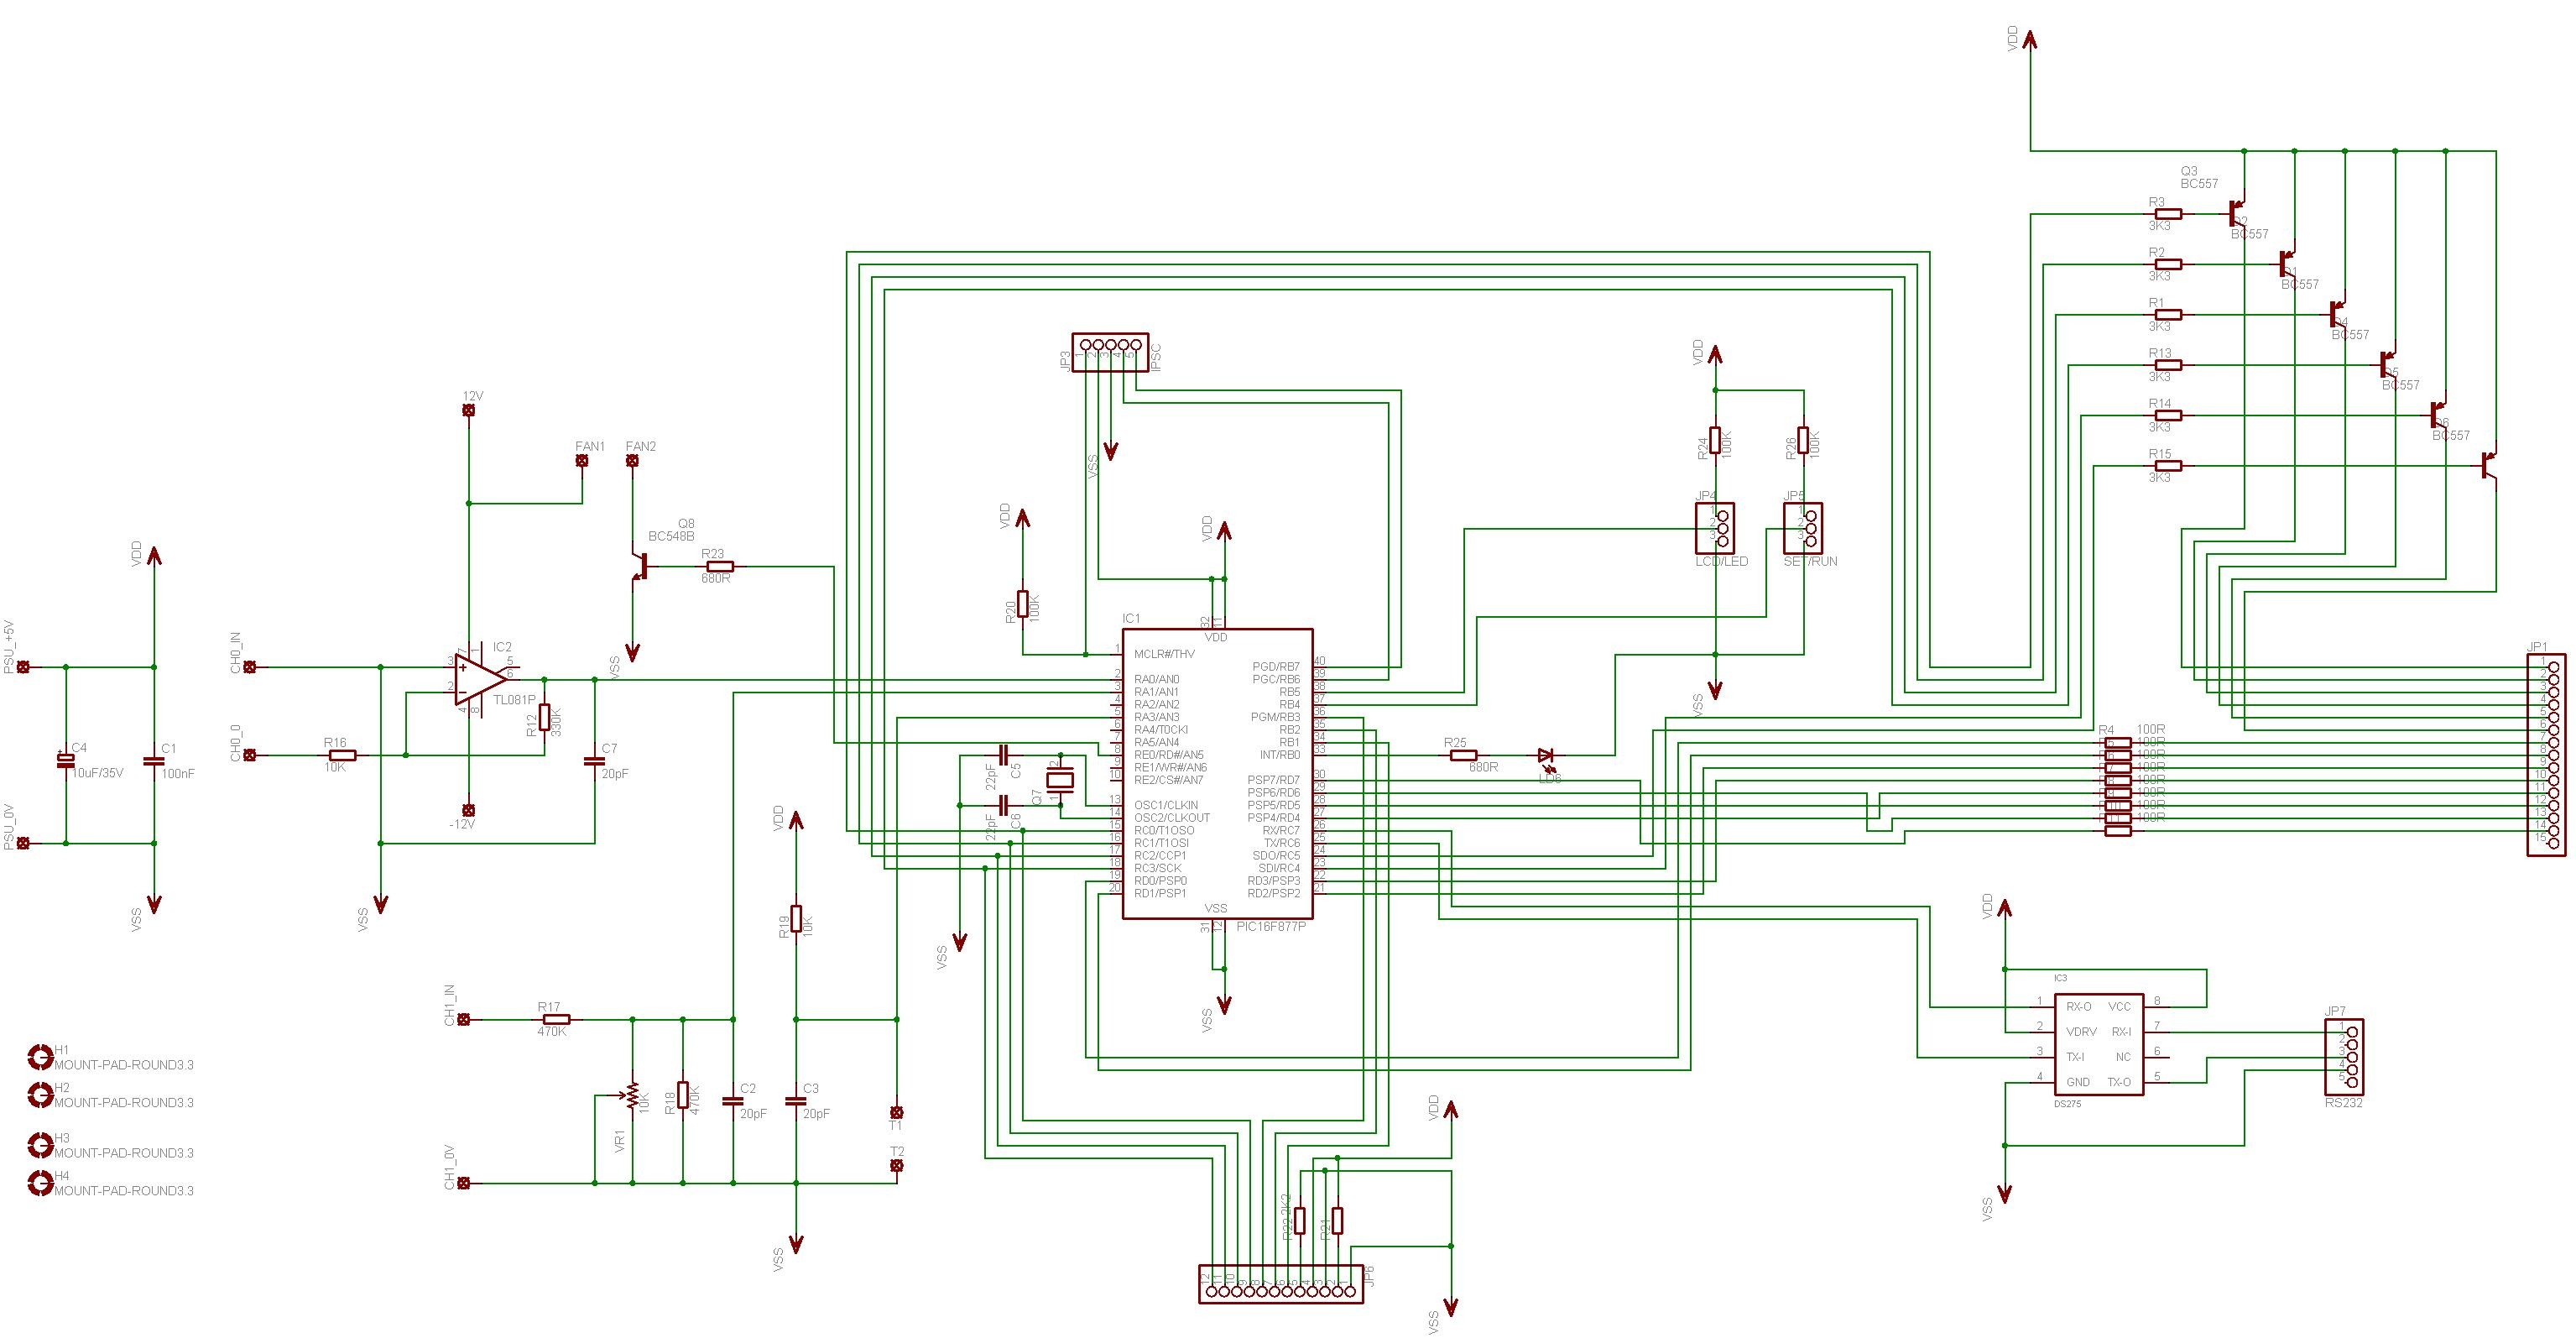 Digital Volt And Amp Meter With Temperature Control Electronics Lab Schematic Diagrams wiring panels